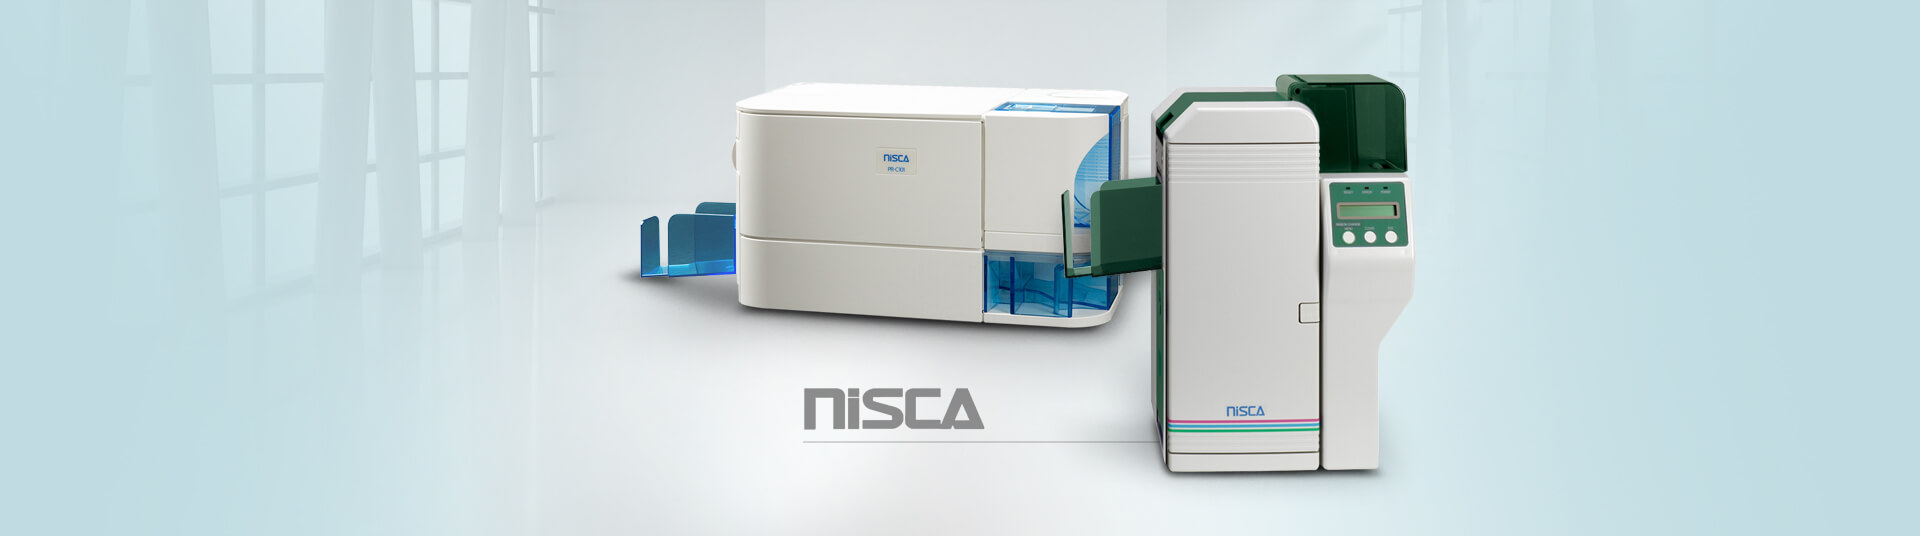 Nisca Photo ID Printers